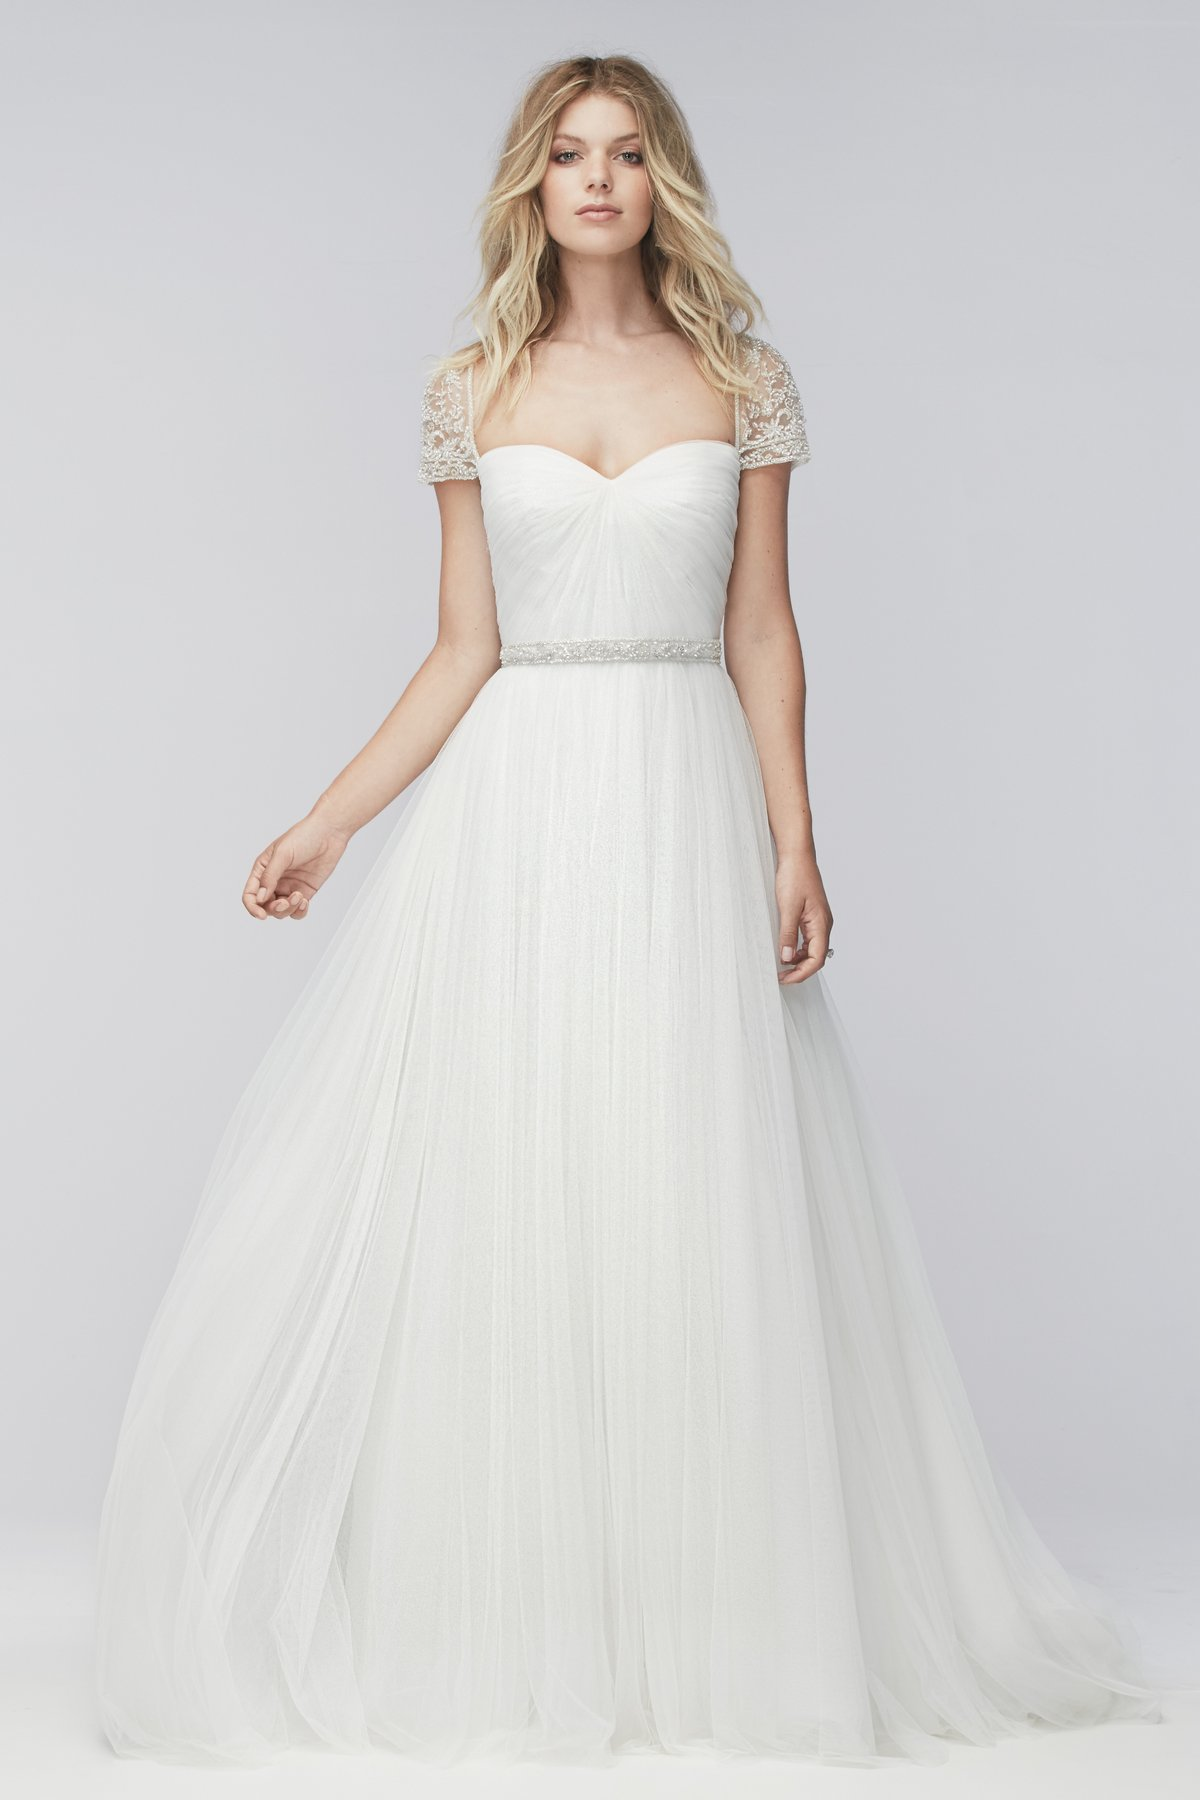 style wedding dress simple wedding dress How to Make a Simple Wedding Dress Look Badass A Practical Wedding We re Your Wedding Planner Wedding Ideas for Brides Bridesmaids Grooms